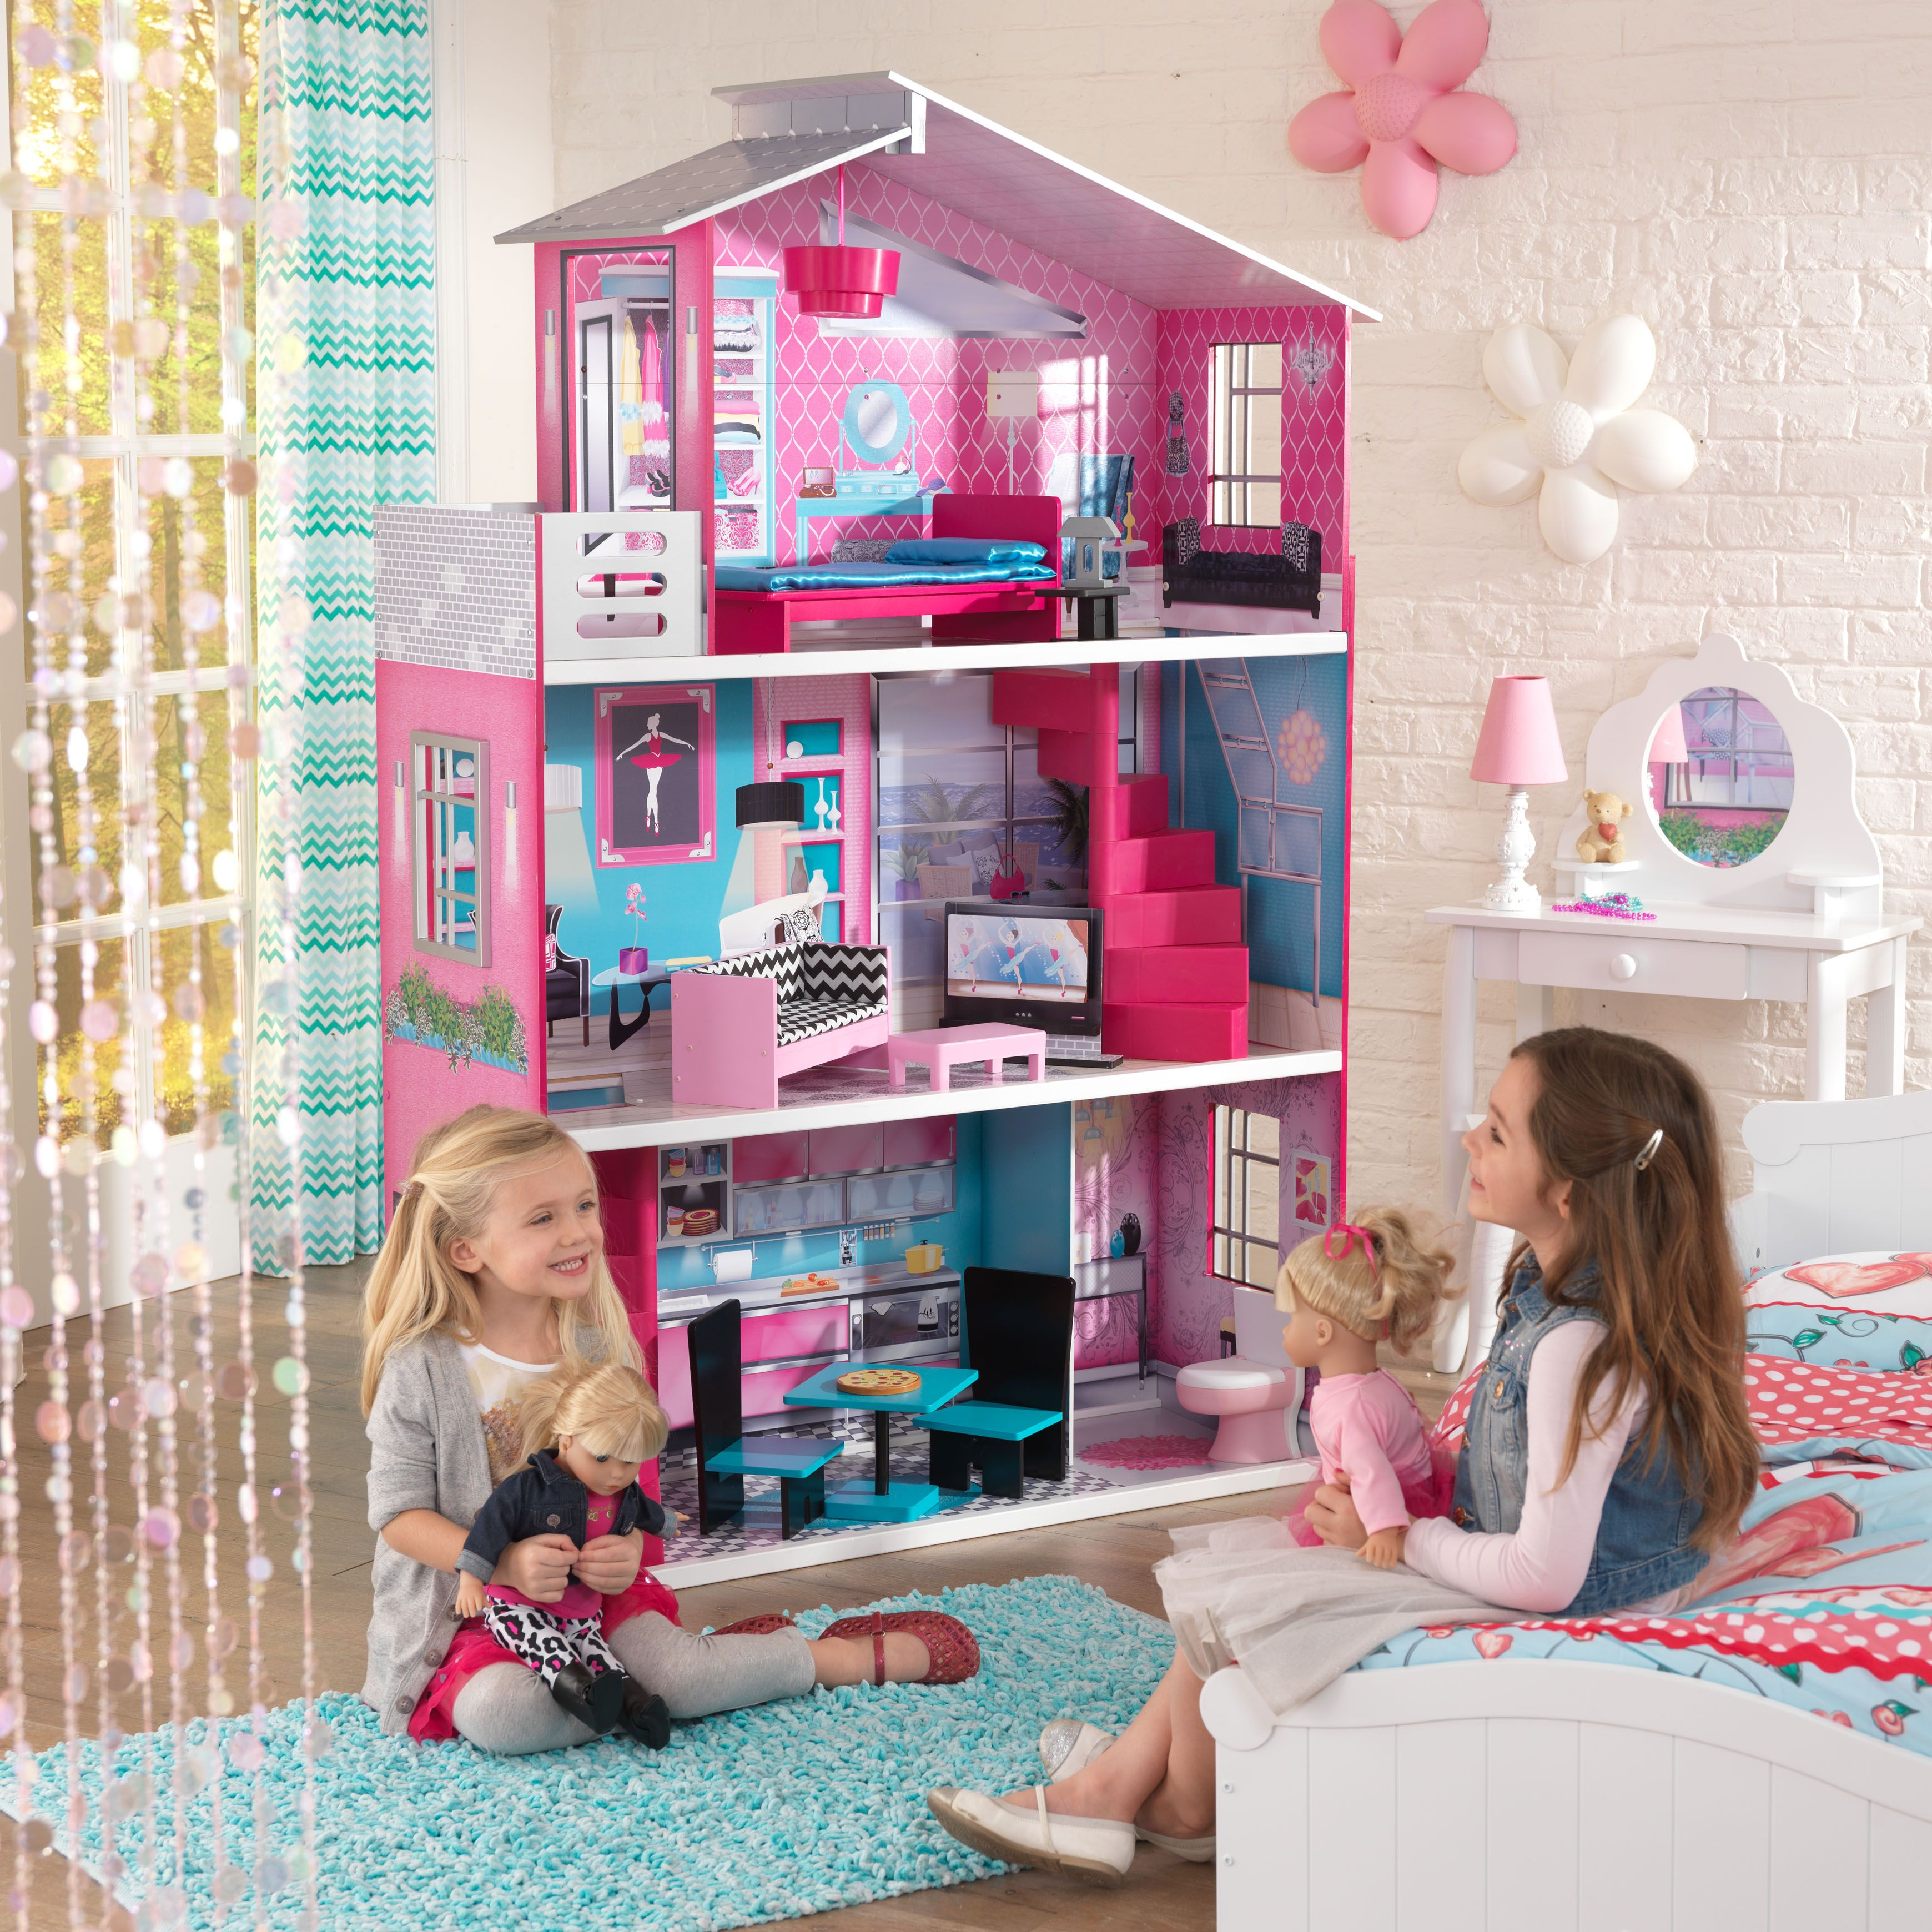 Breanna 18Inch Dollhouse kidkraft dollhouse playroom